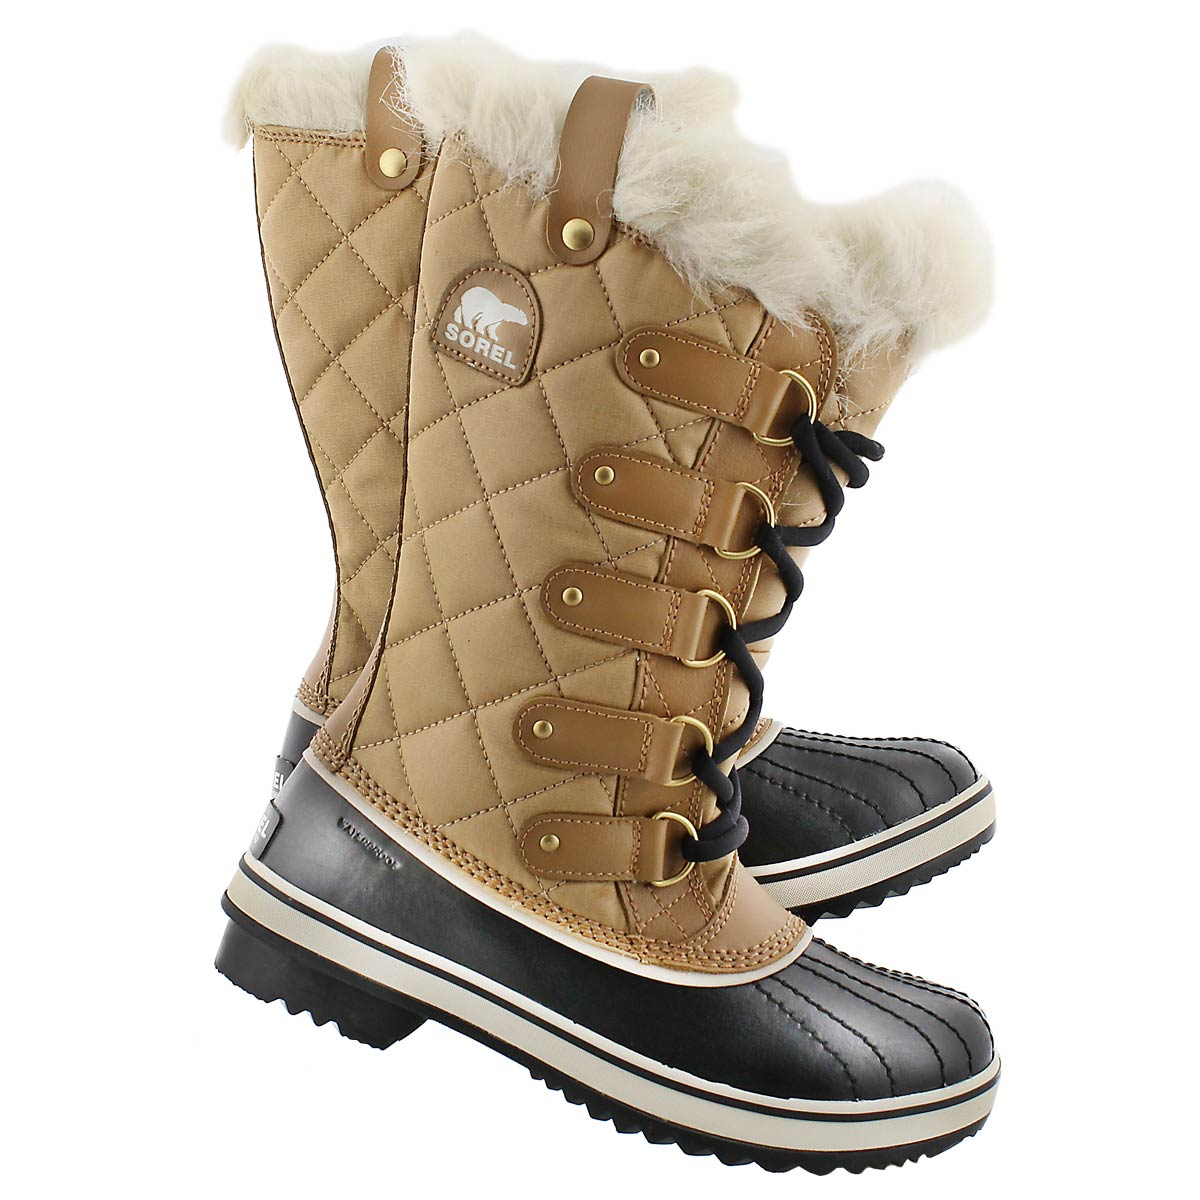 Lds Tofino curry wtpf winter boot